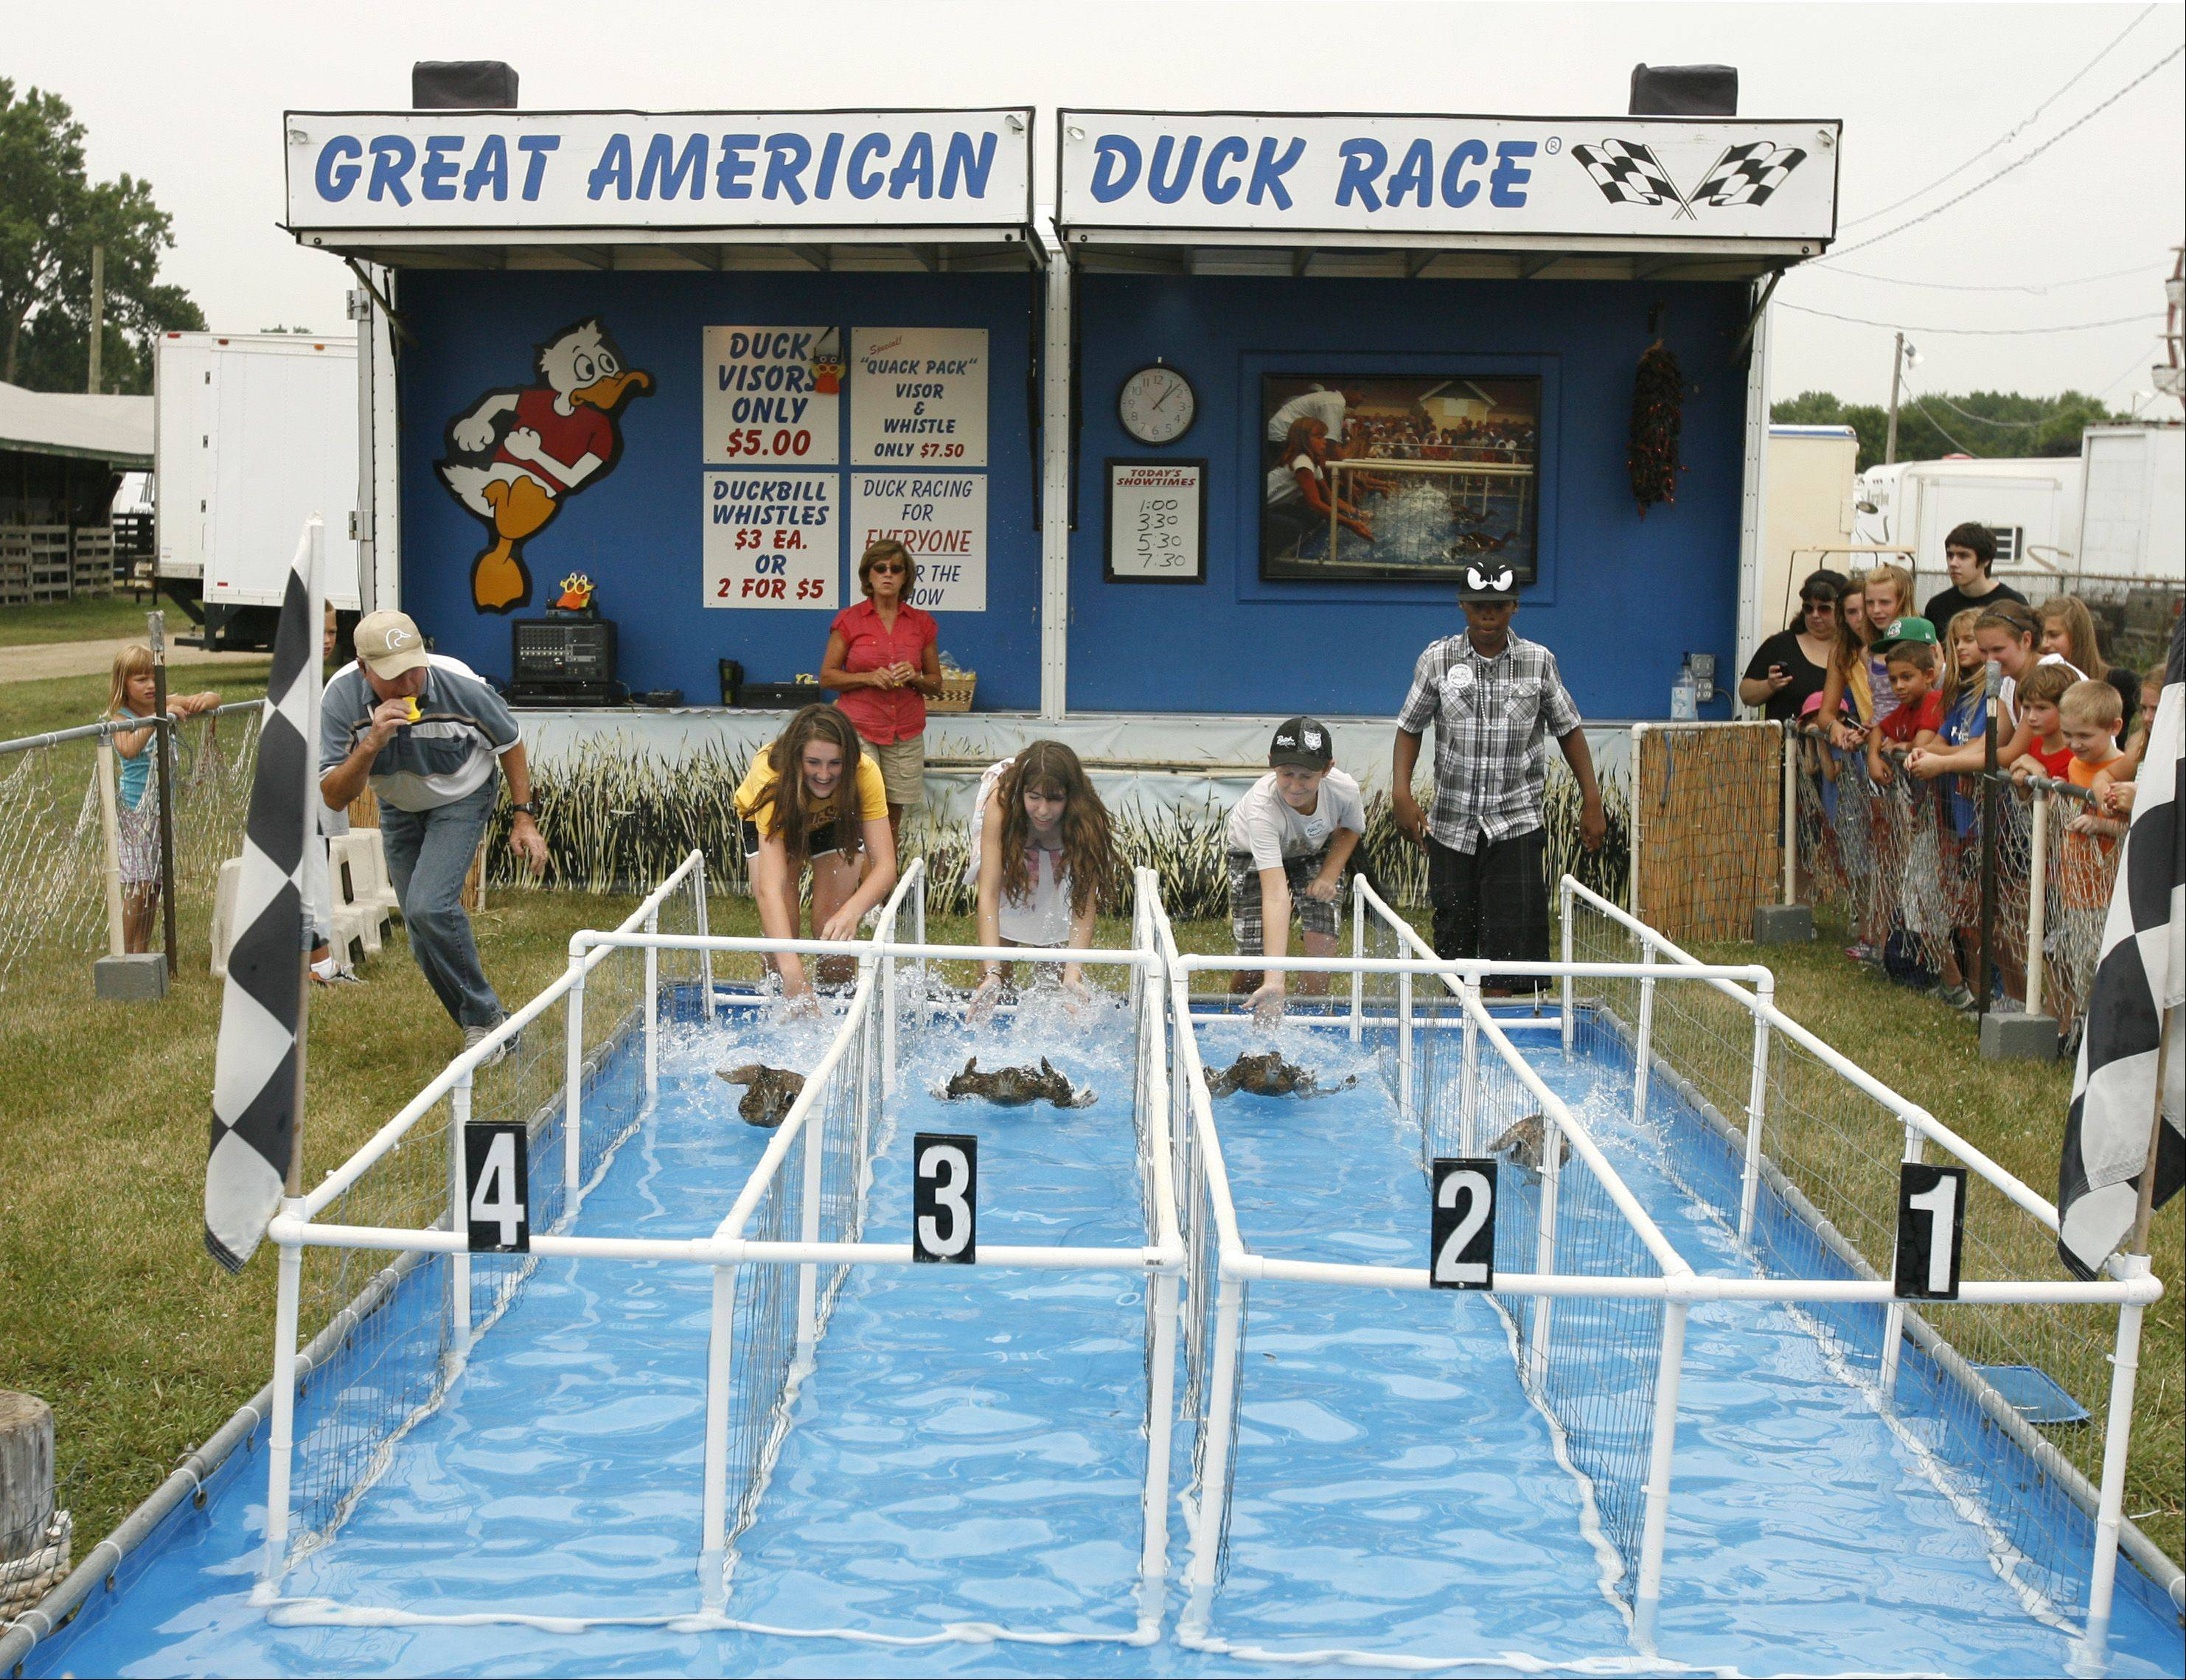 The Great American Duck Race gets under way.